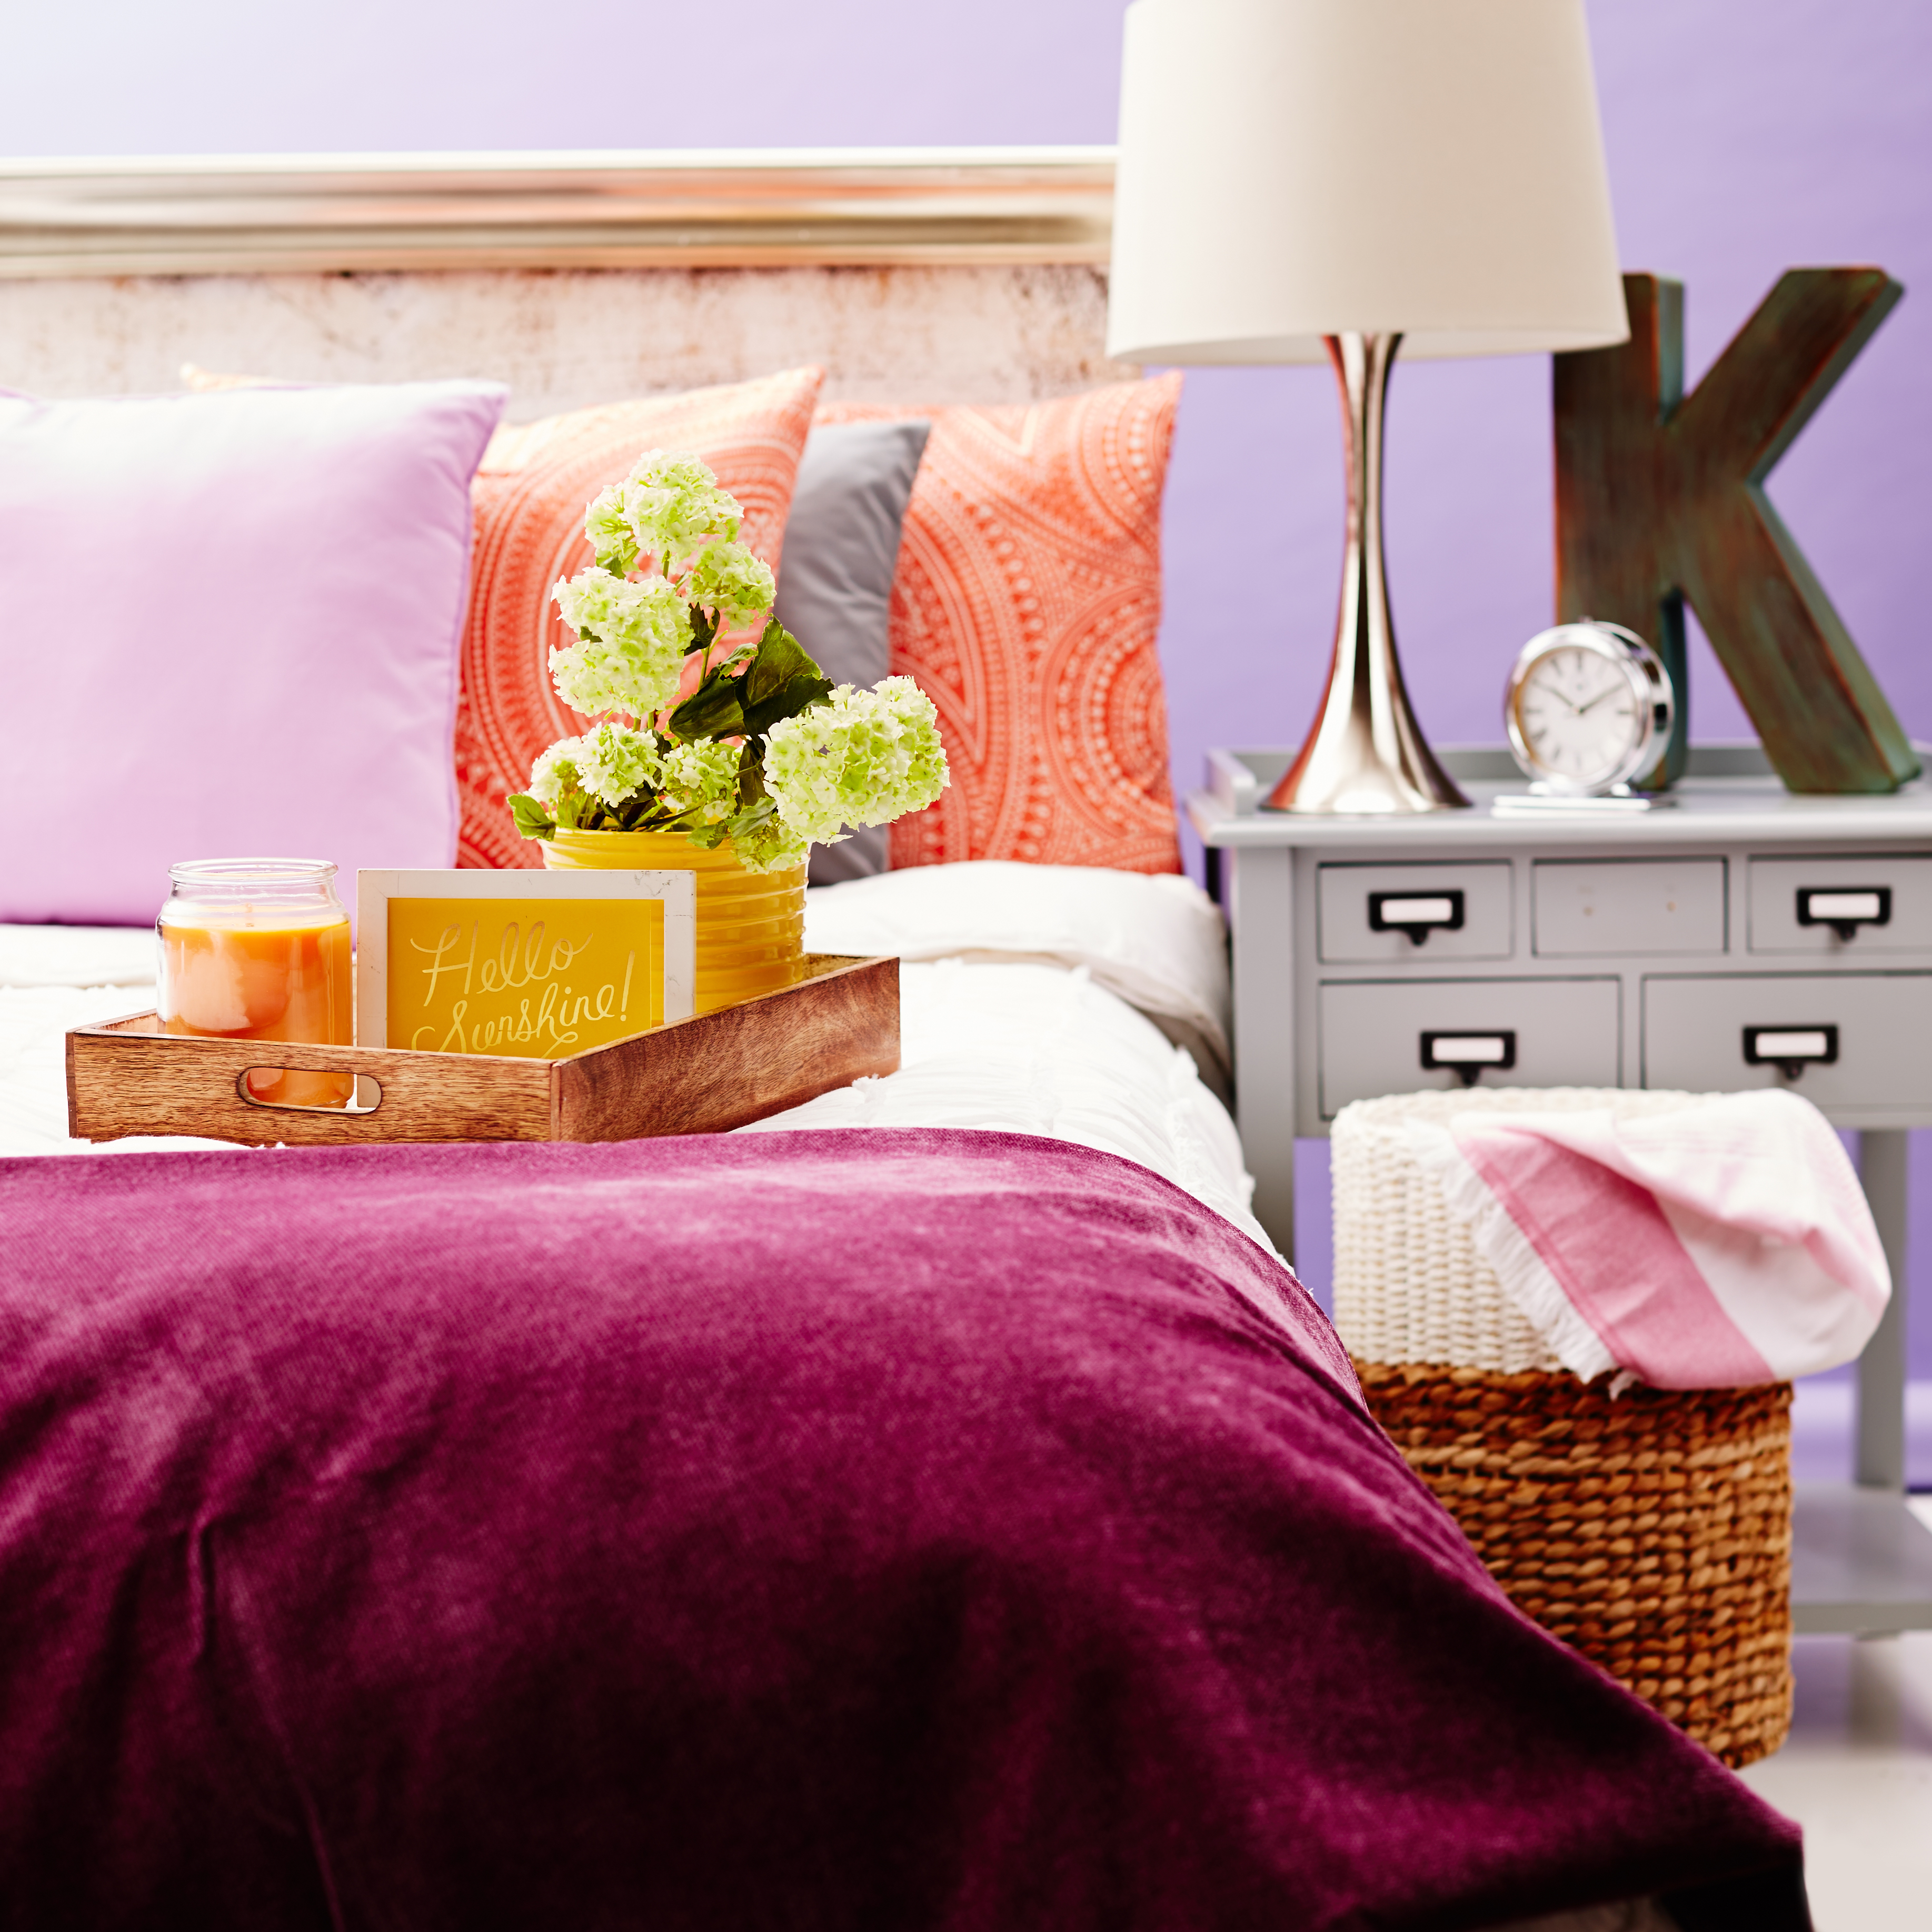 Zulily Home Decor: In The News